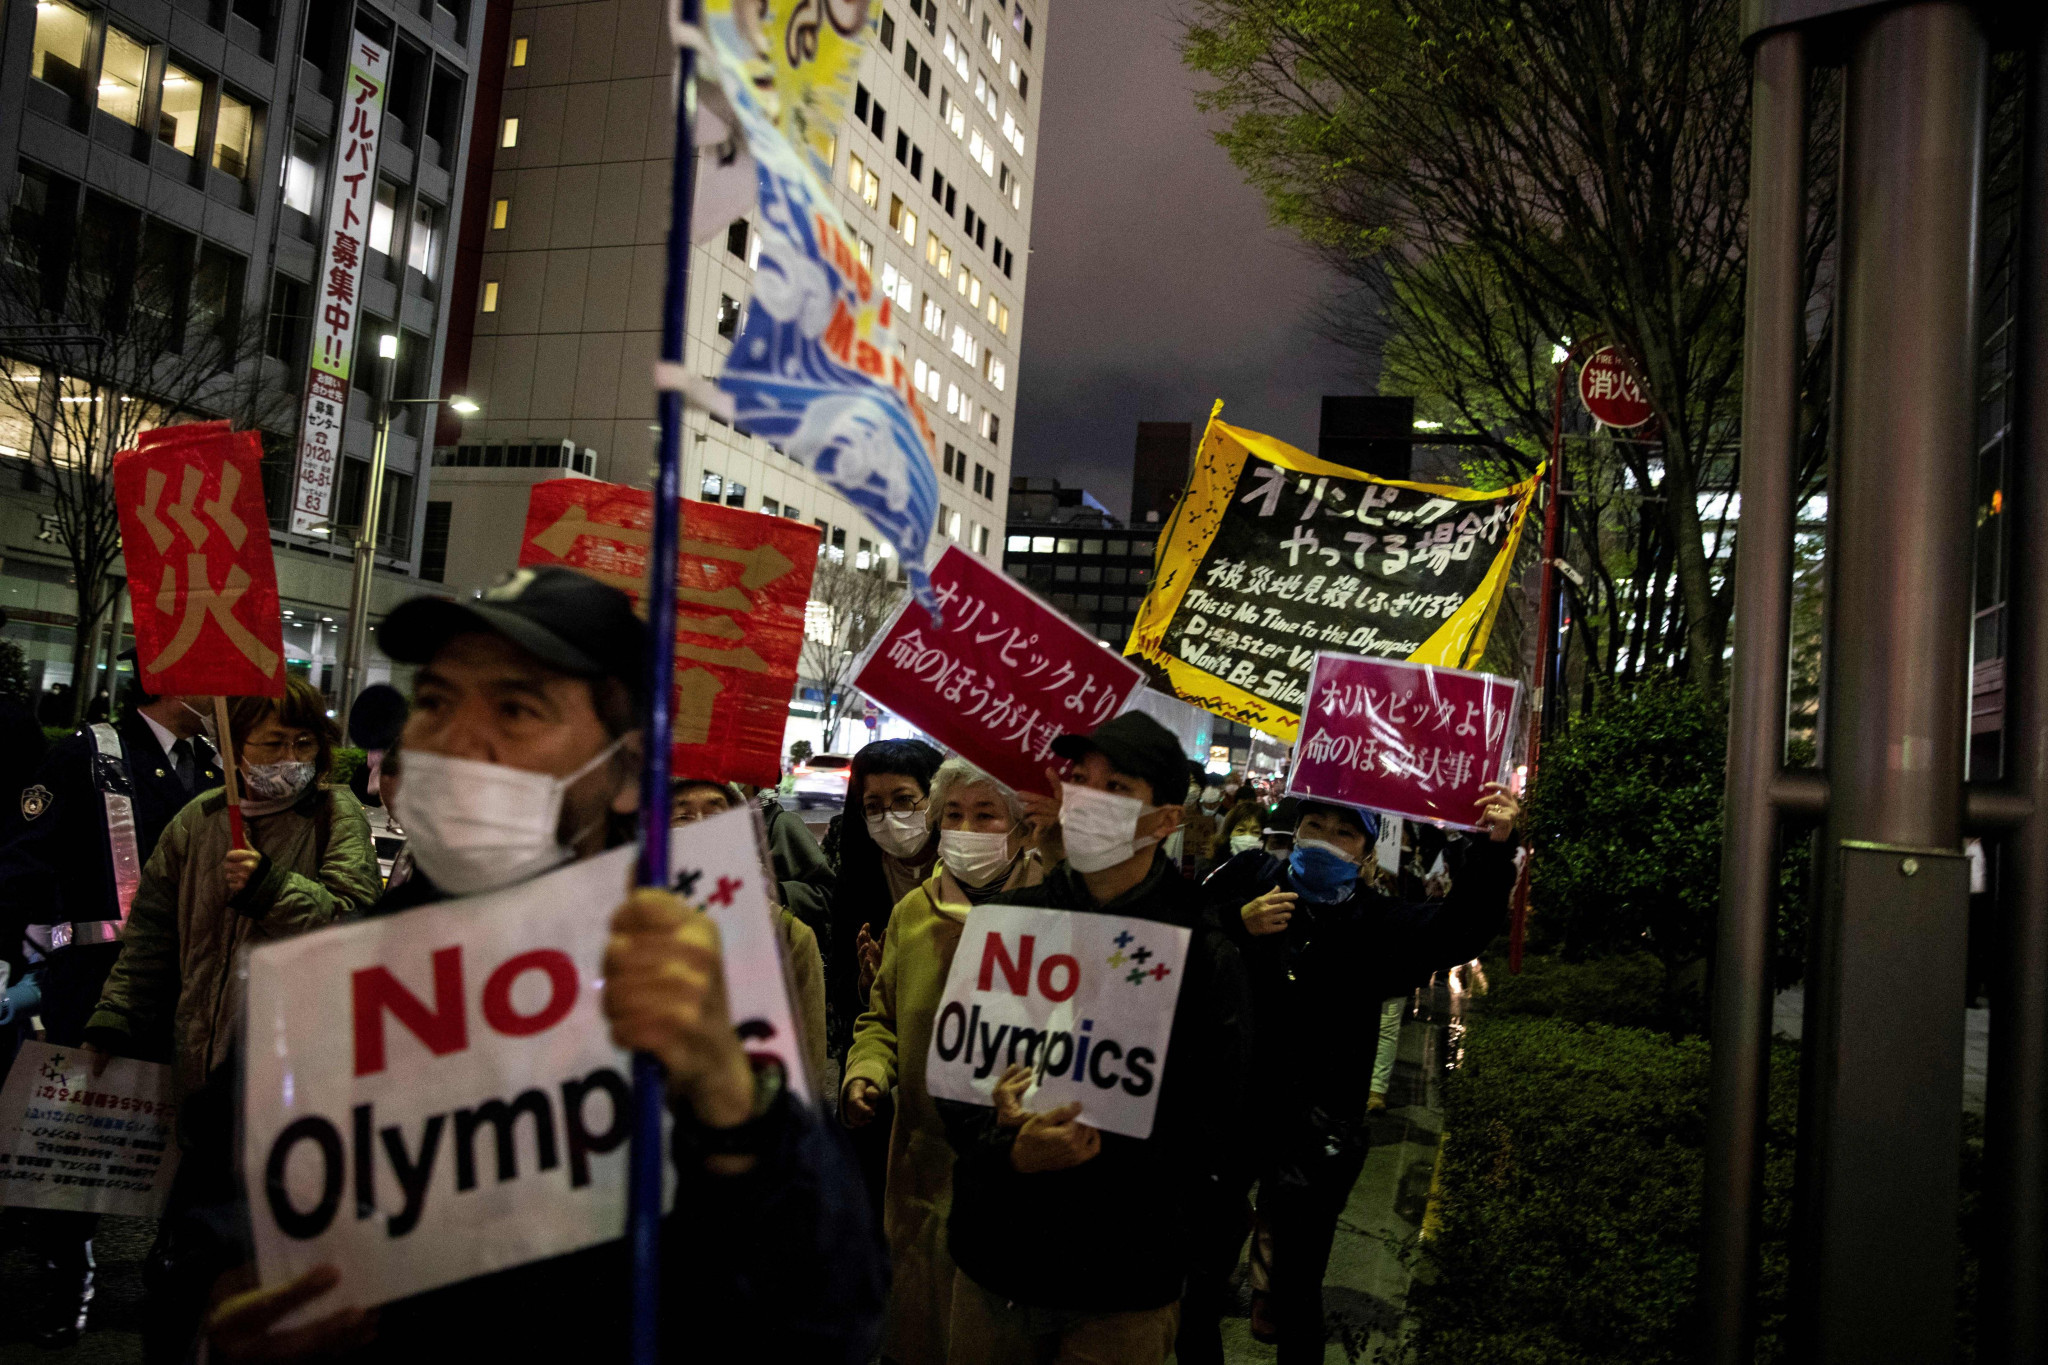 Japanese TV asked to investigate why sound muted on Torch Relay stream during protests